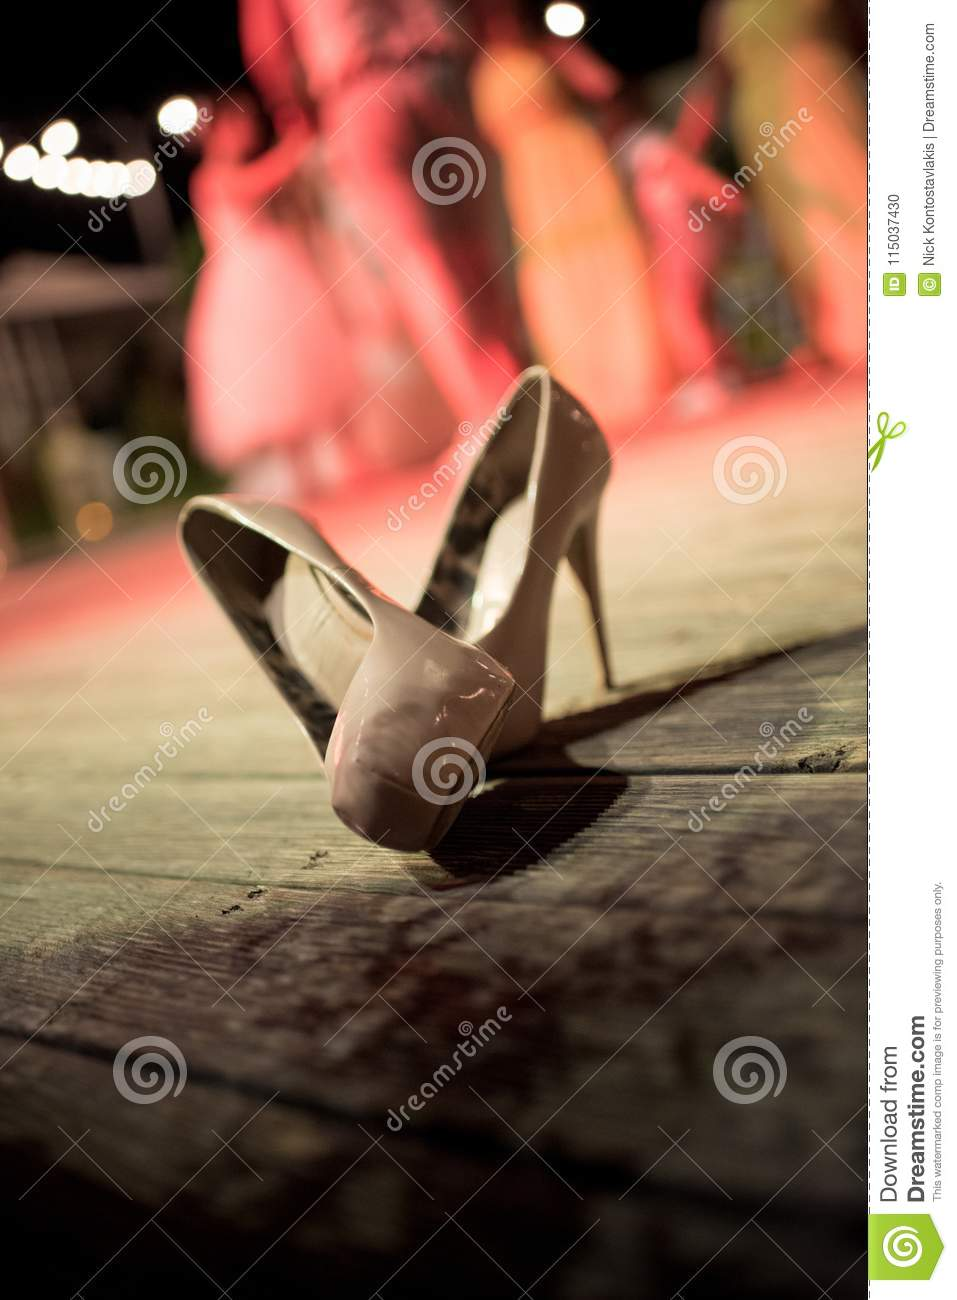 A Pair Of Bridal Shoes At The Outdoor Wedding Reception Stock Photo